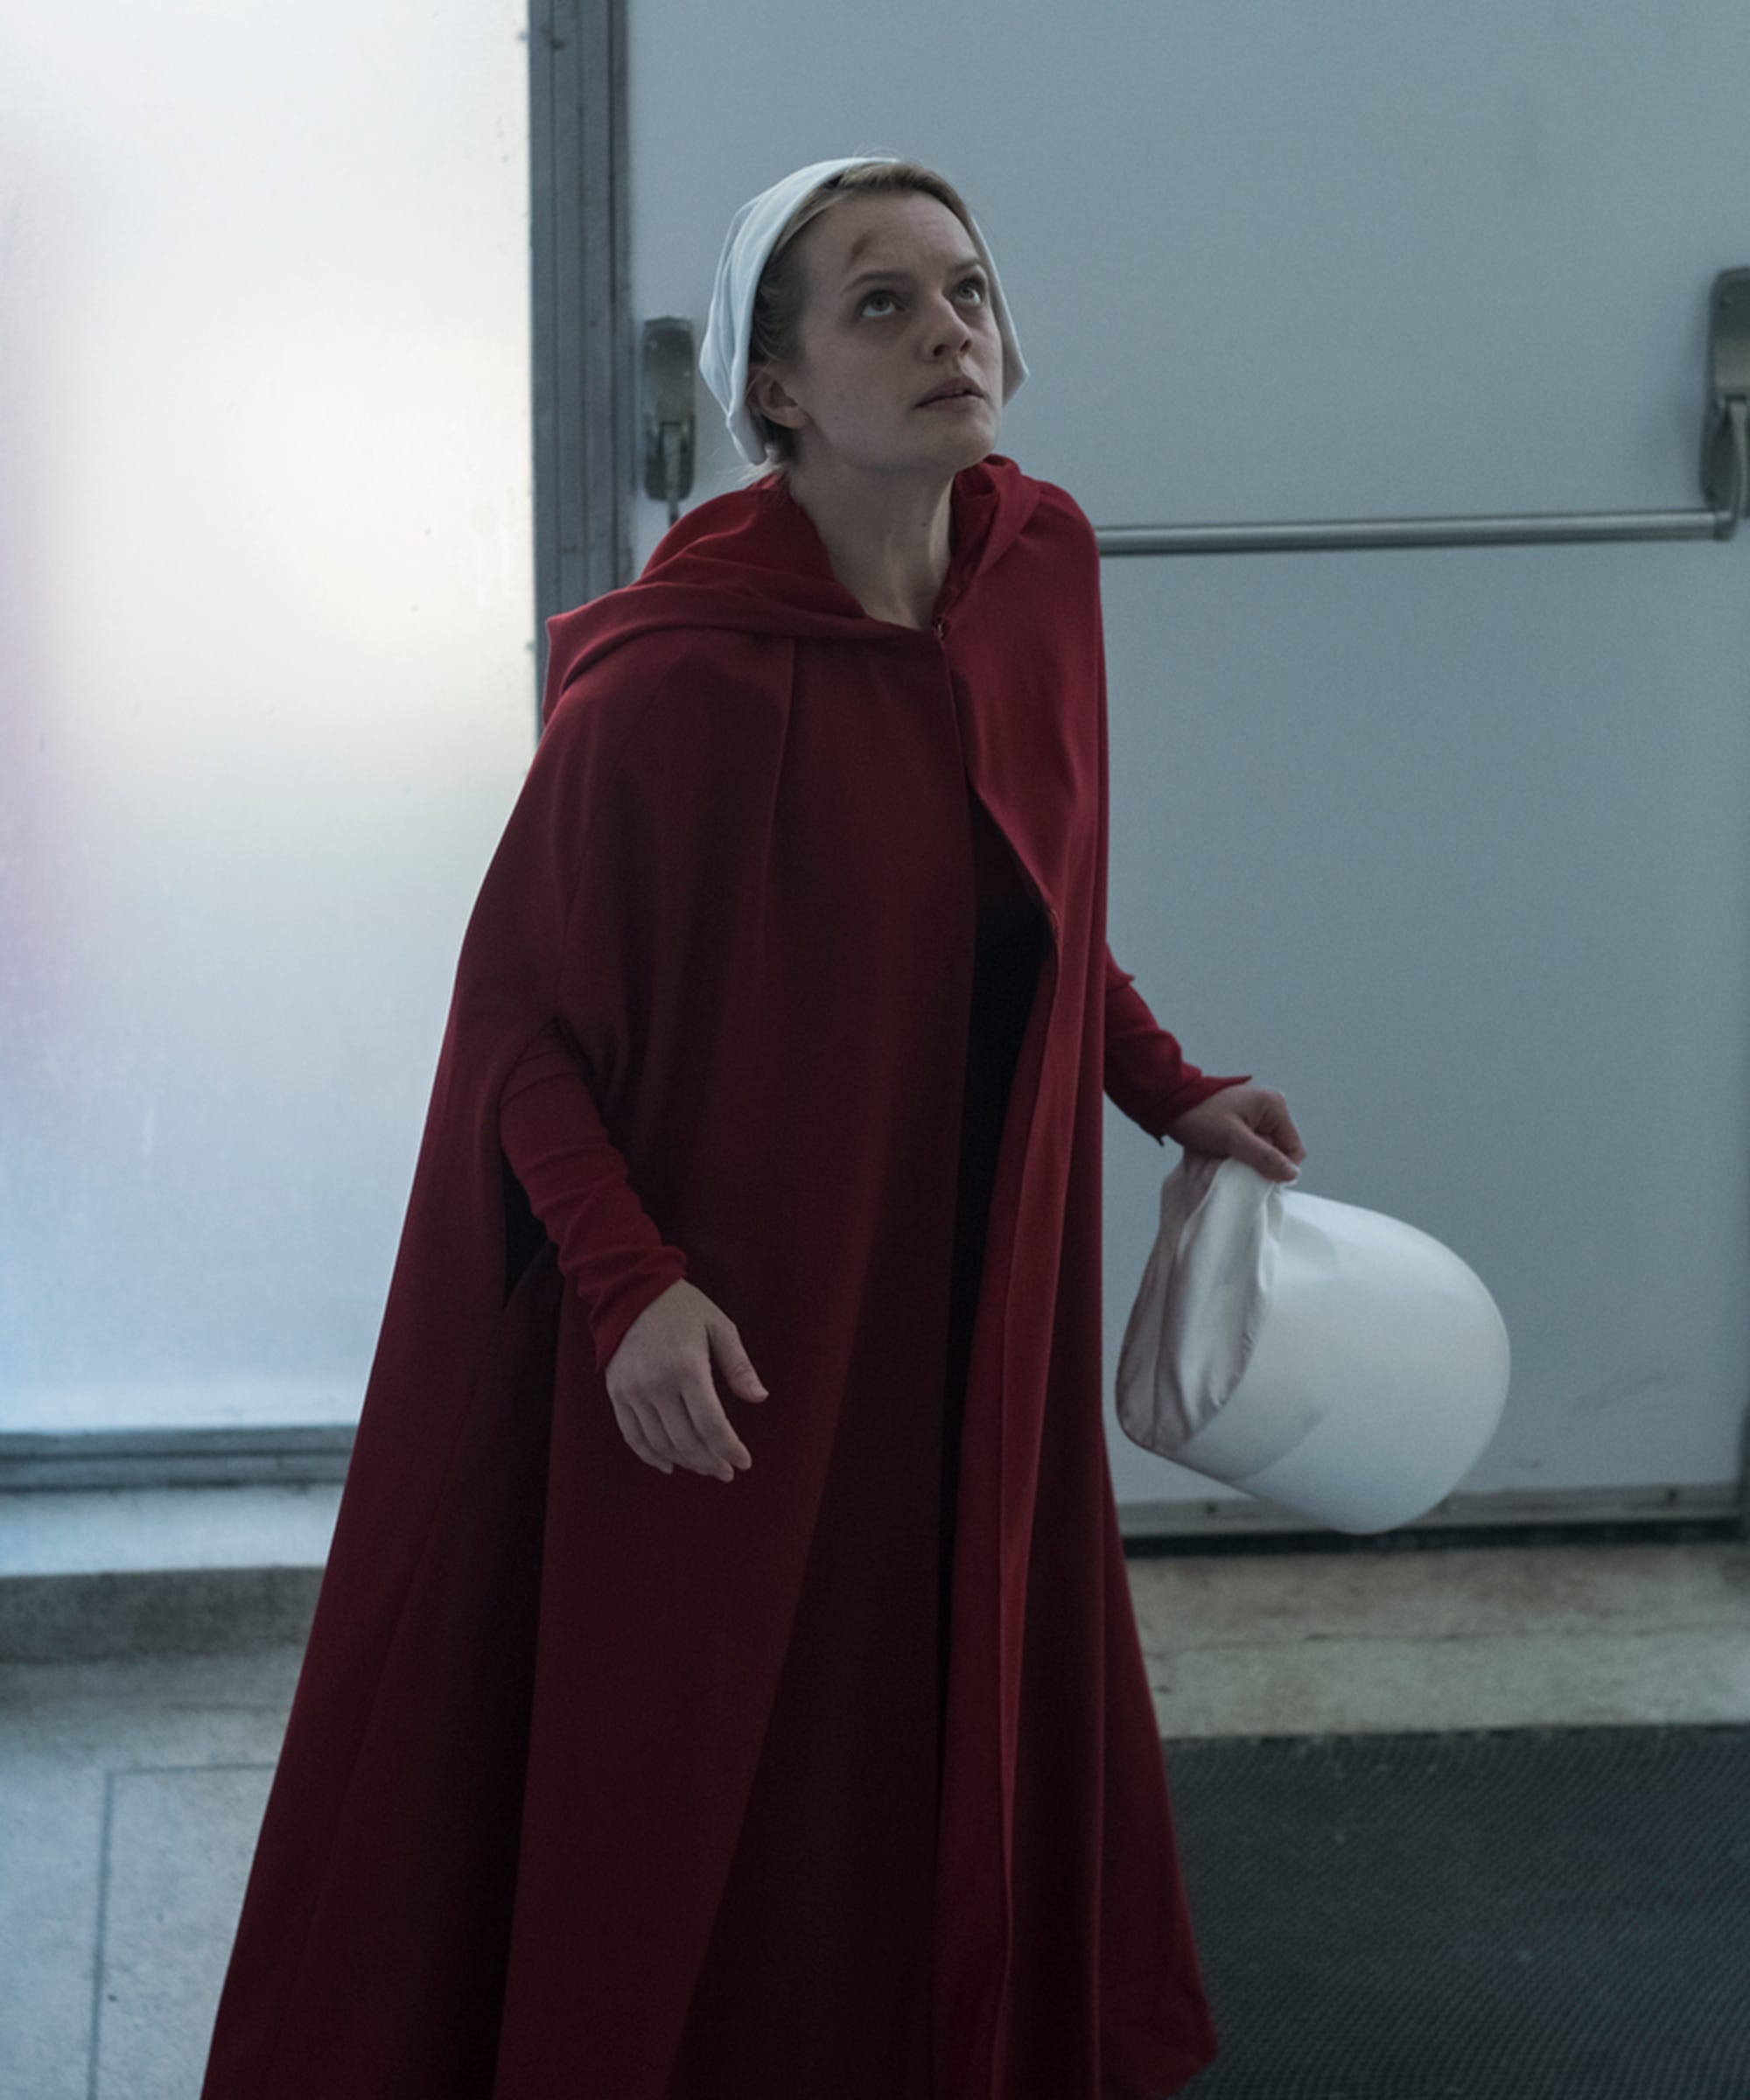 The Misery Of The Handmaid's Tale Isn't Ending Anytime Soon